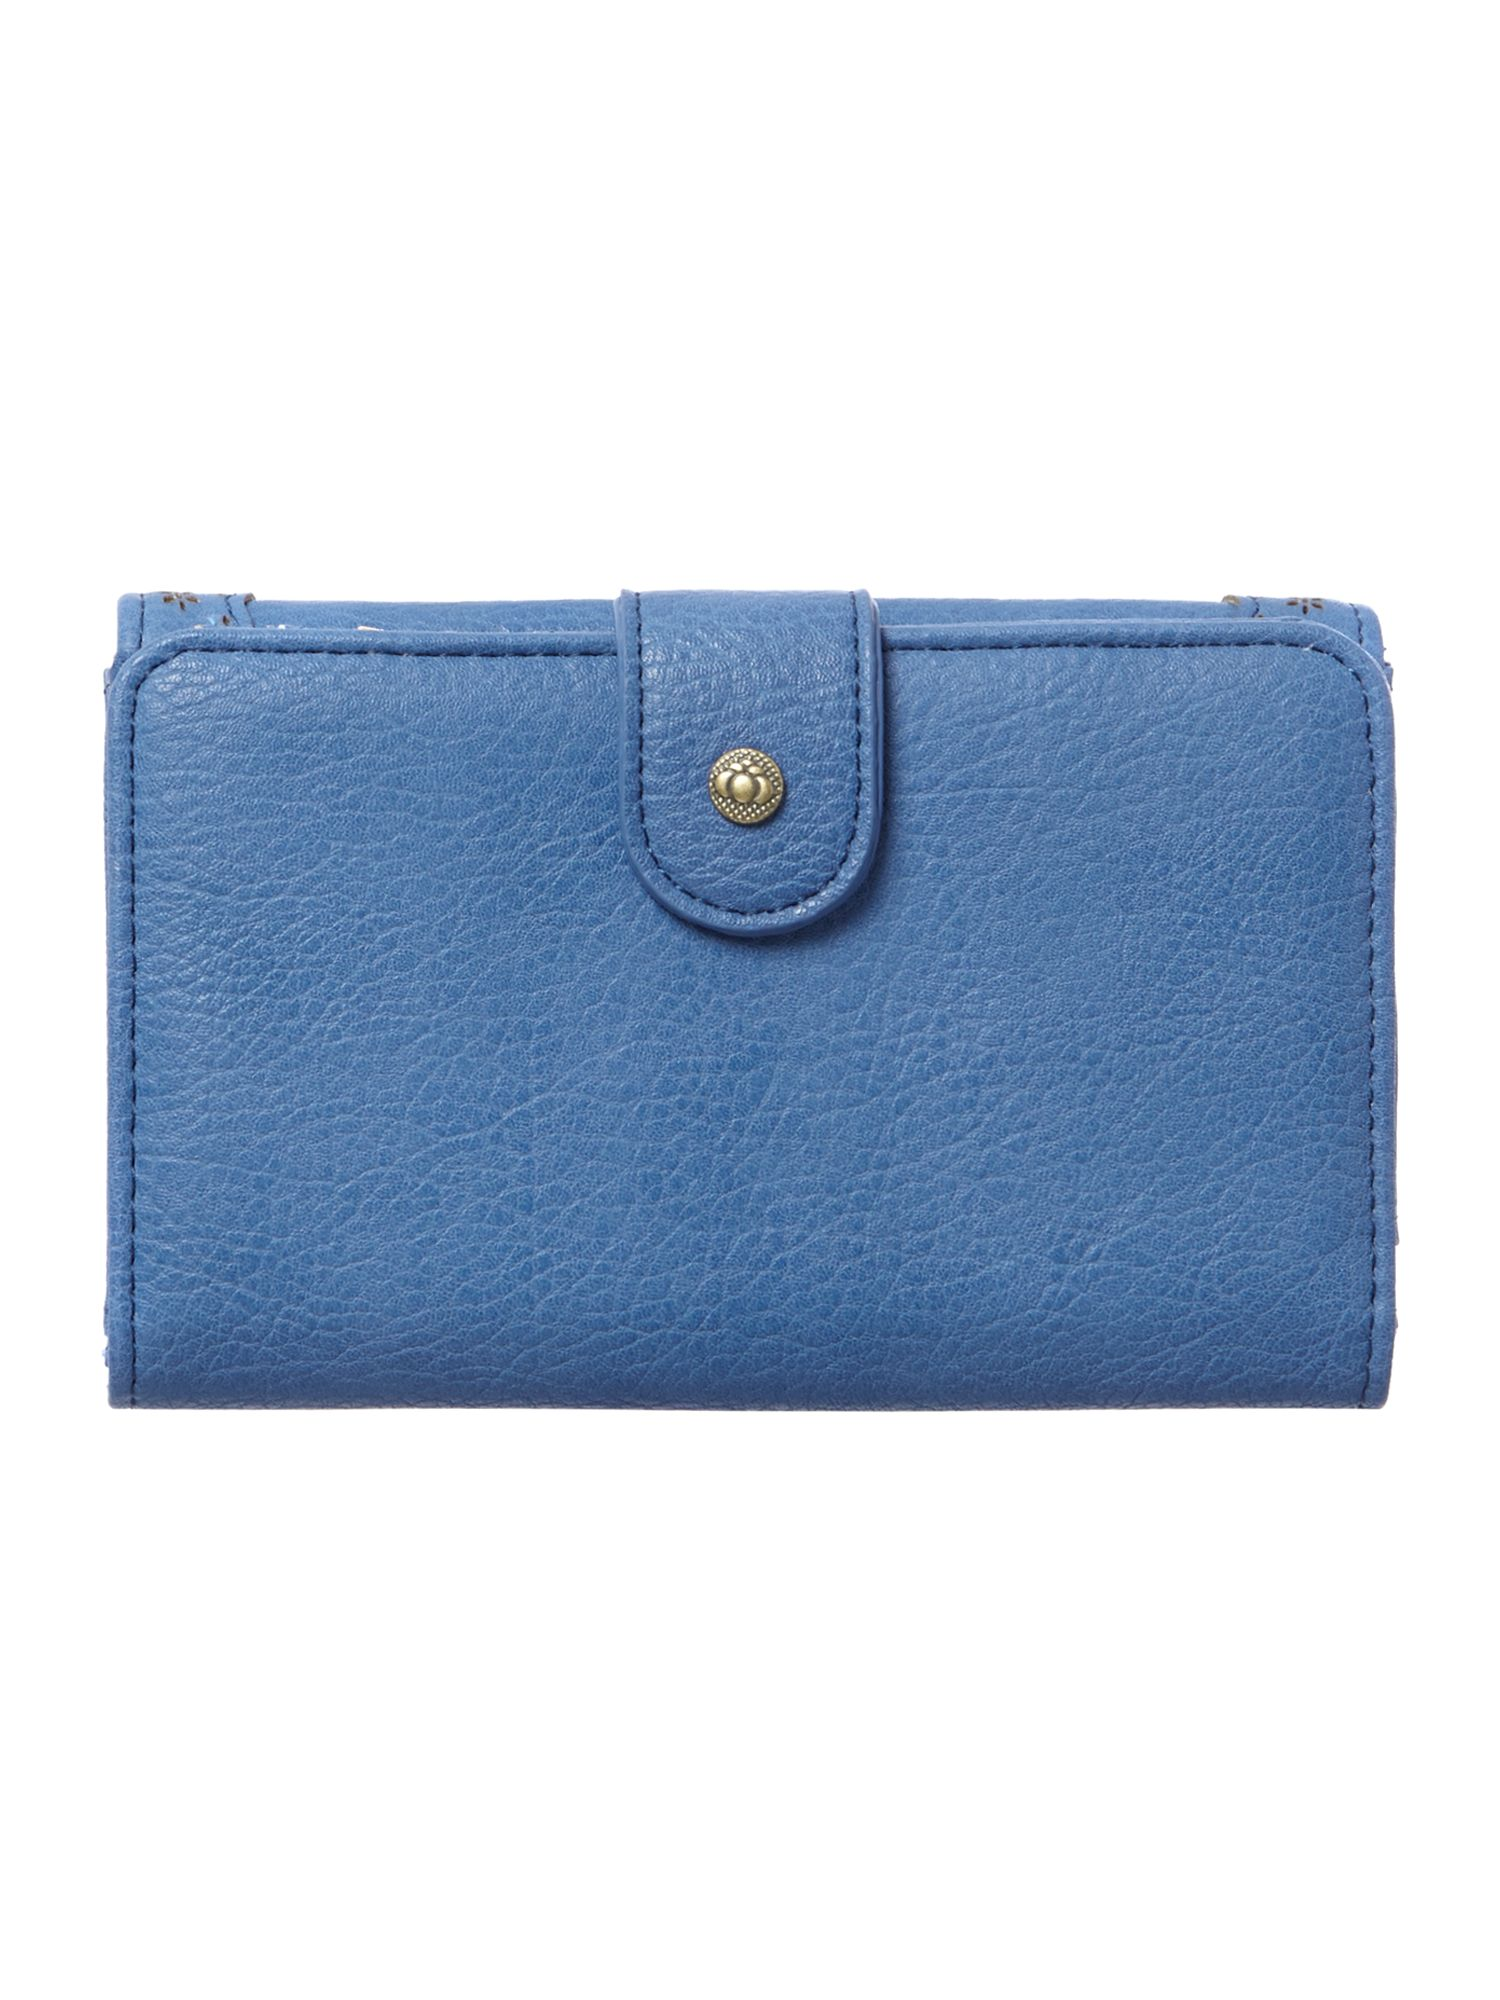 Alicia blue medium flap over purse